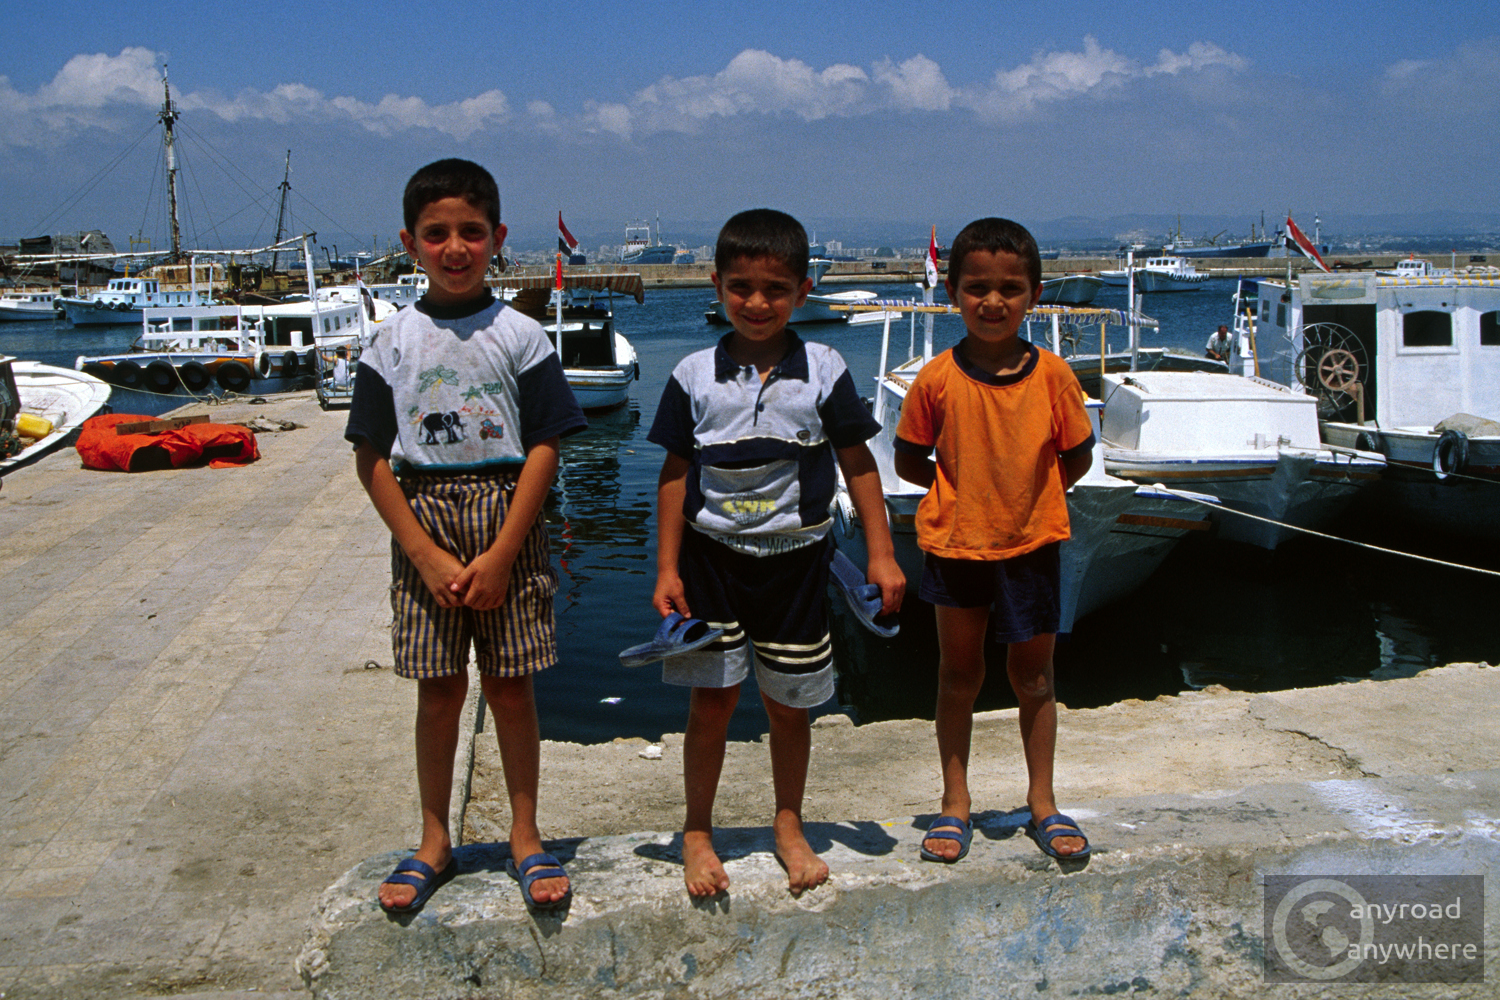 Three lovely kids we met in the port of Tartus